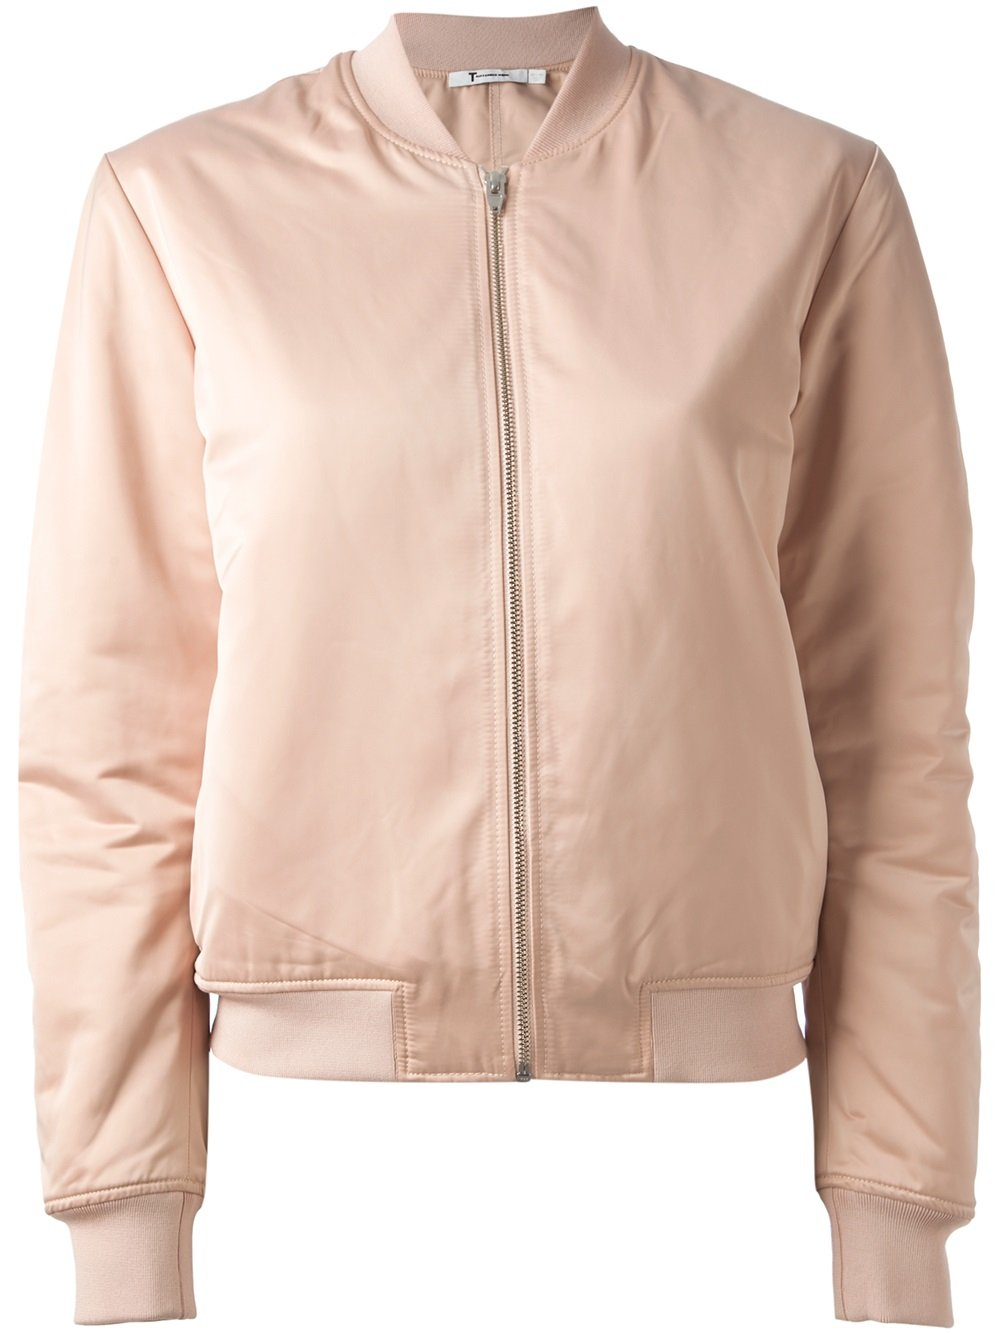 80847abe6 T By Alexander Wang Pink Bomber Jacket